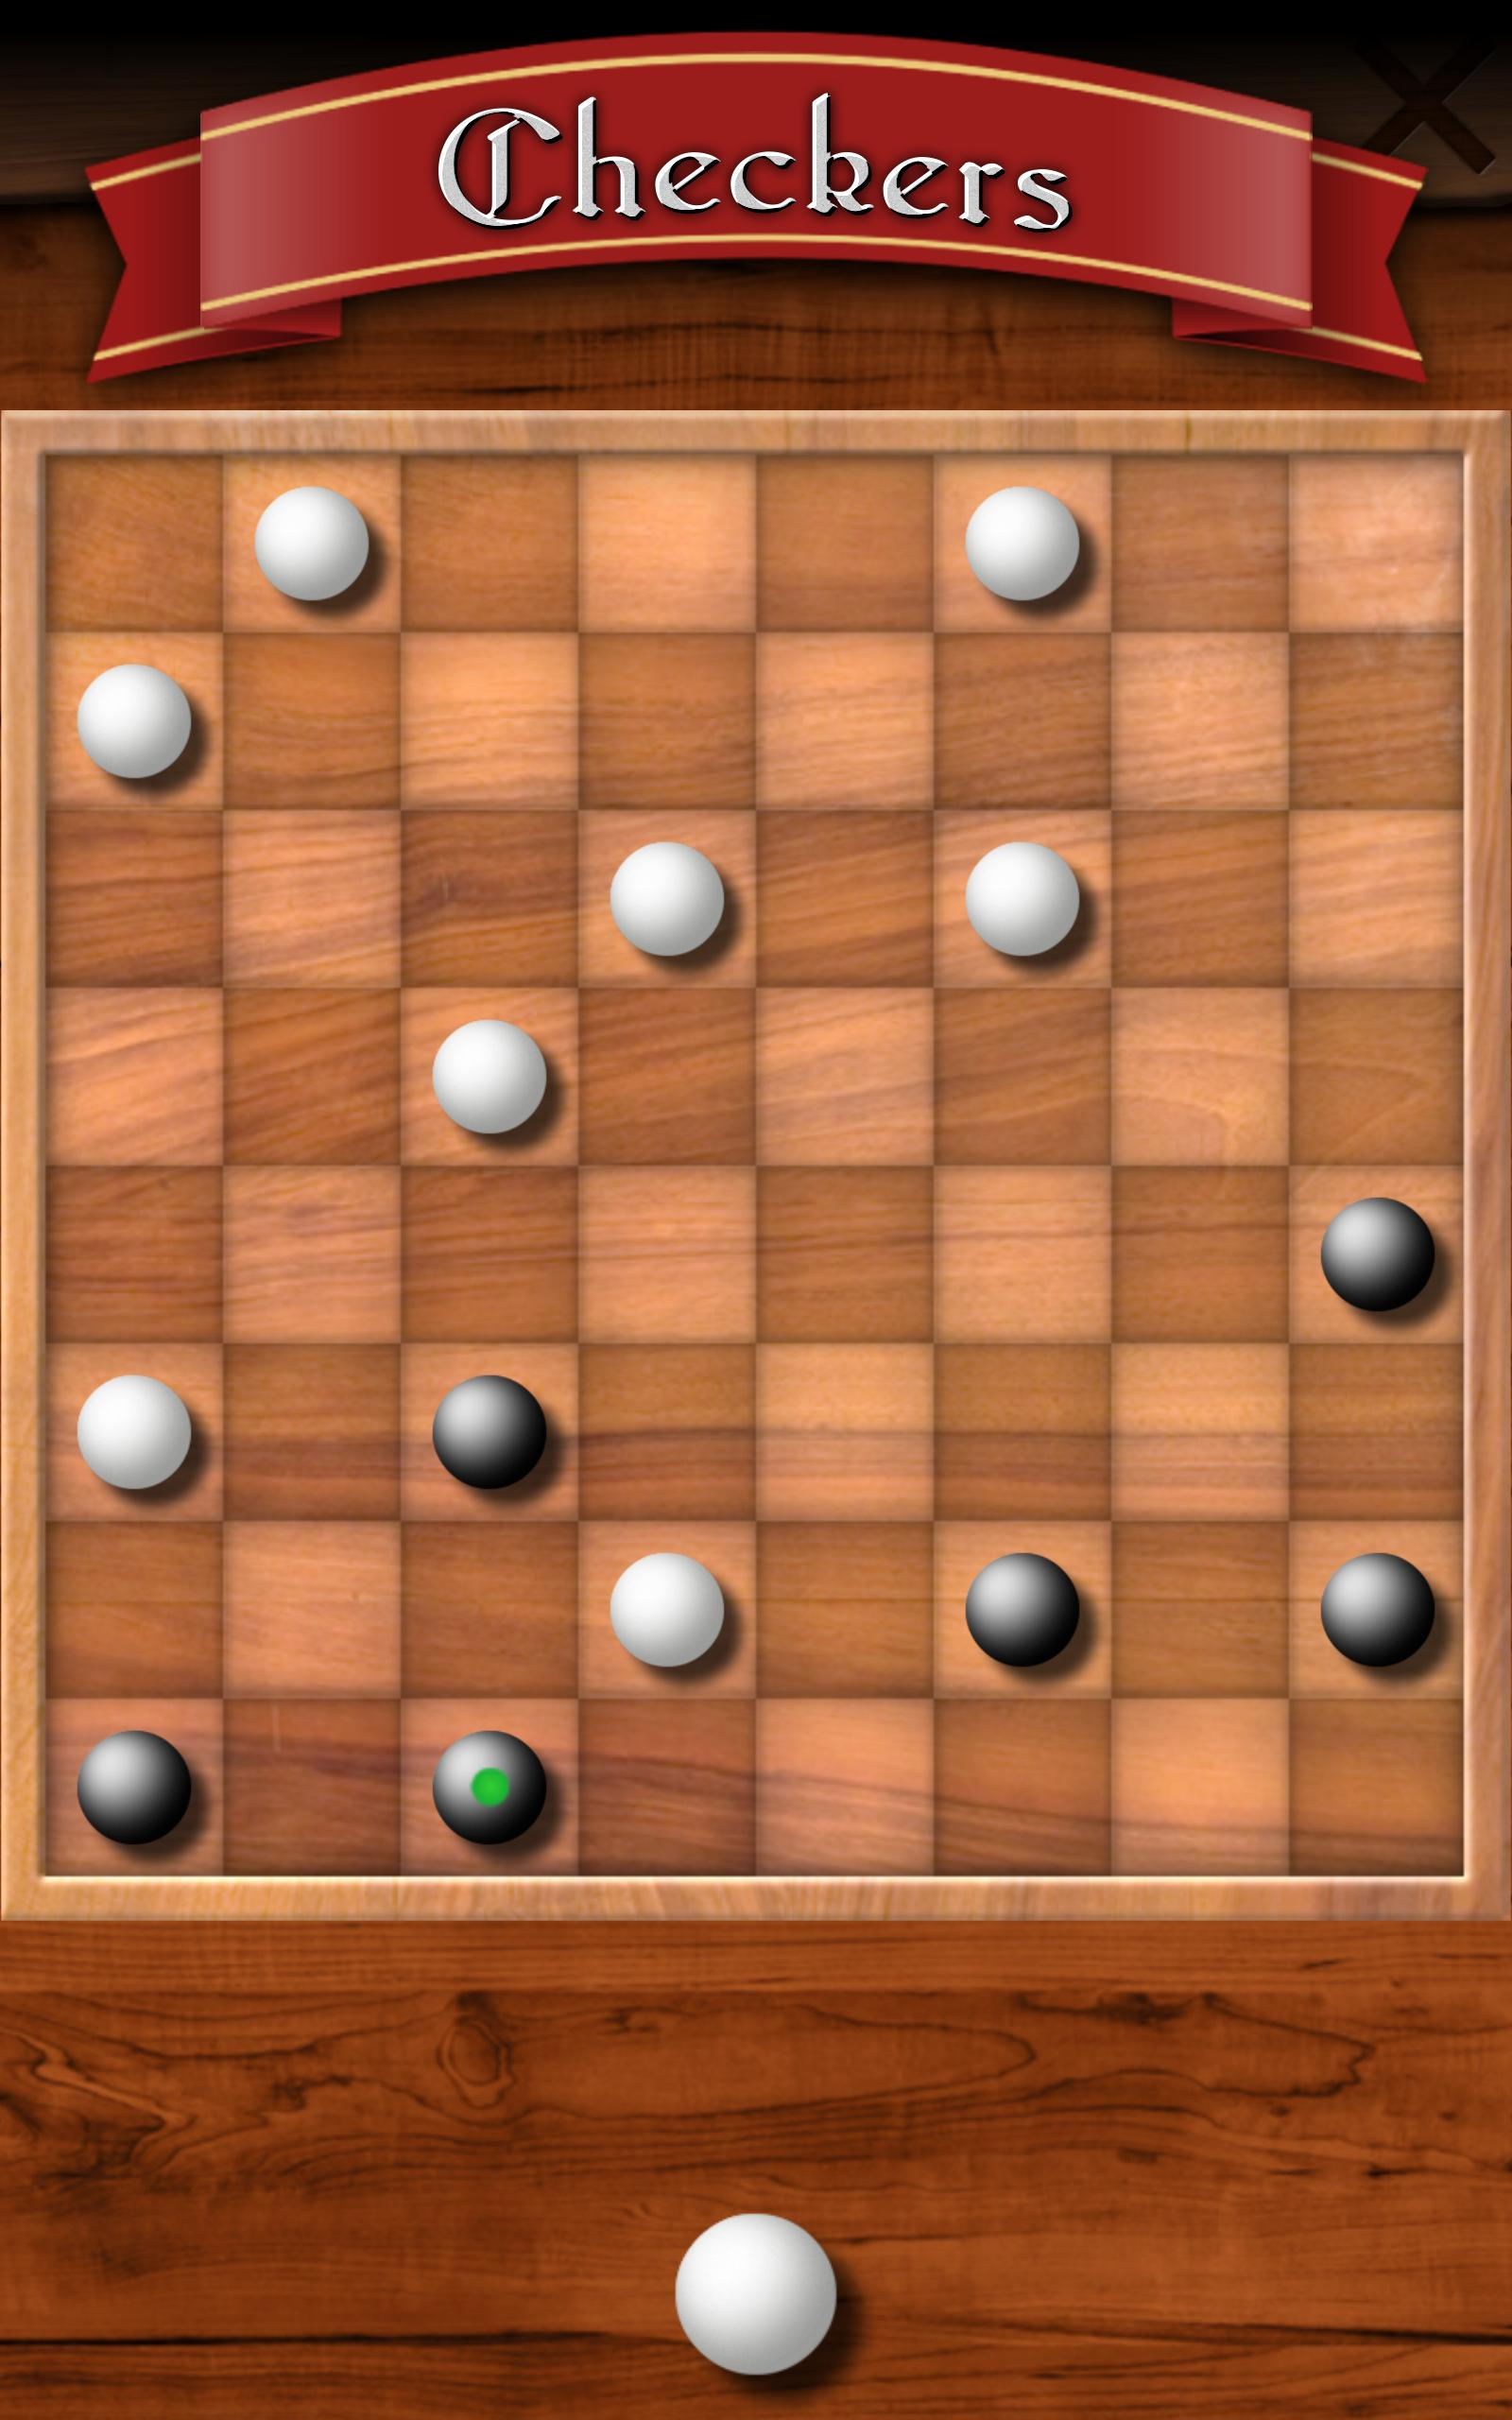 Free Classic 4 - The famous board games 2.1.6 Screenshot 5